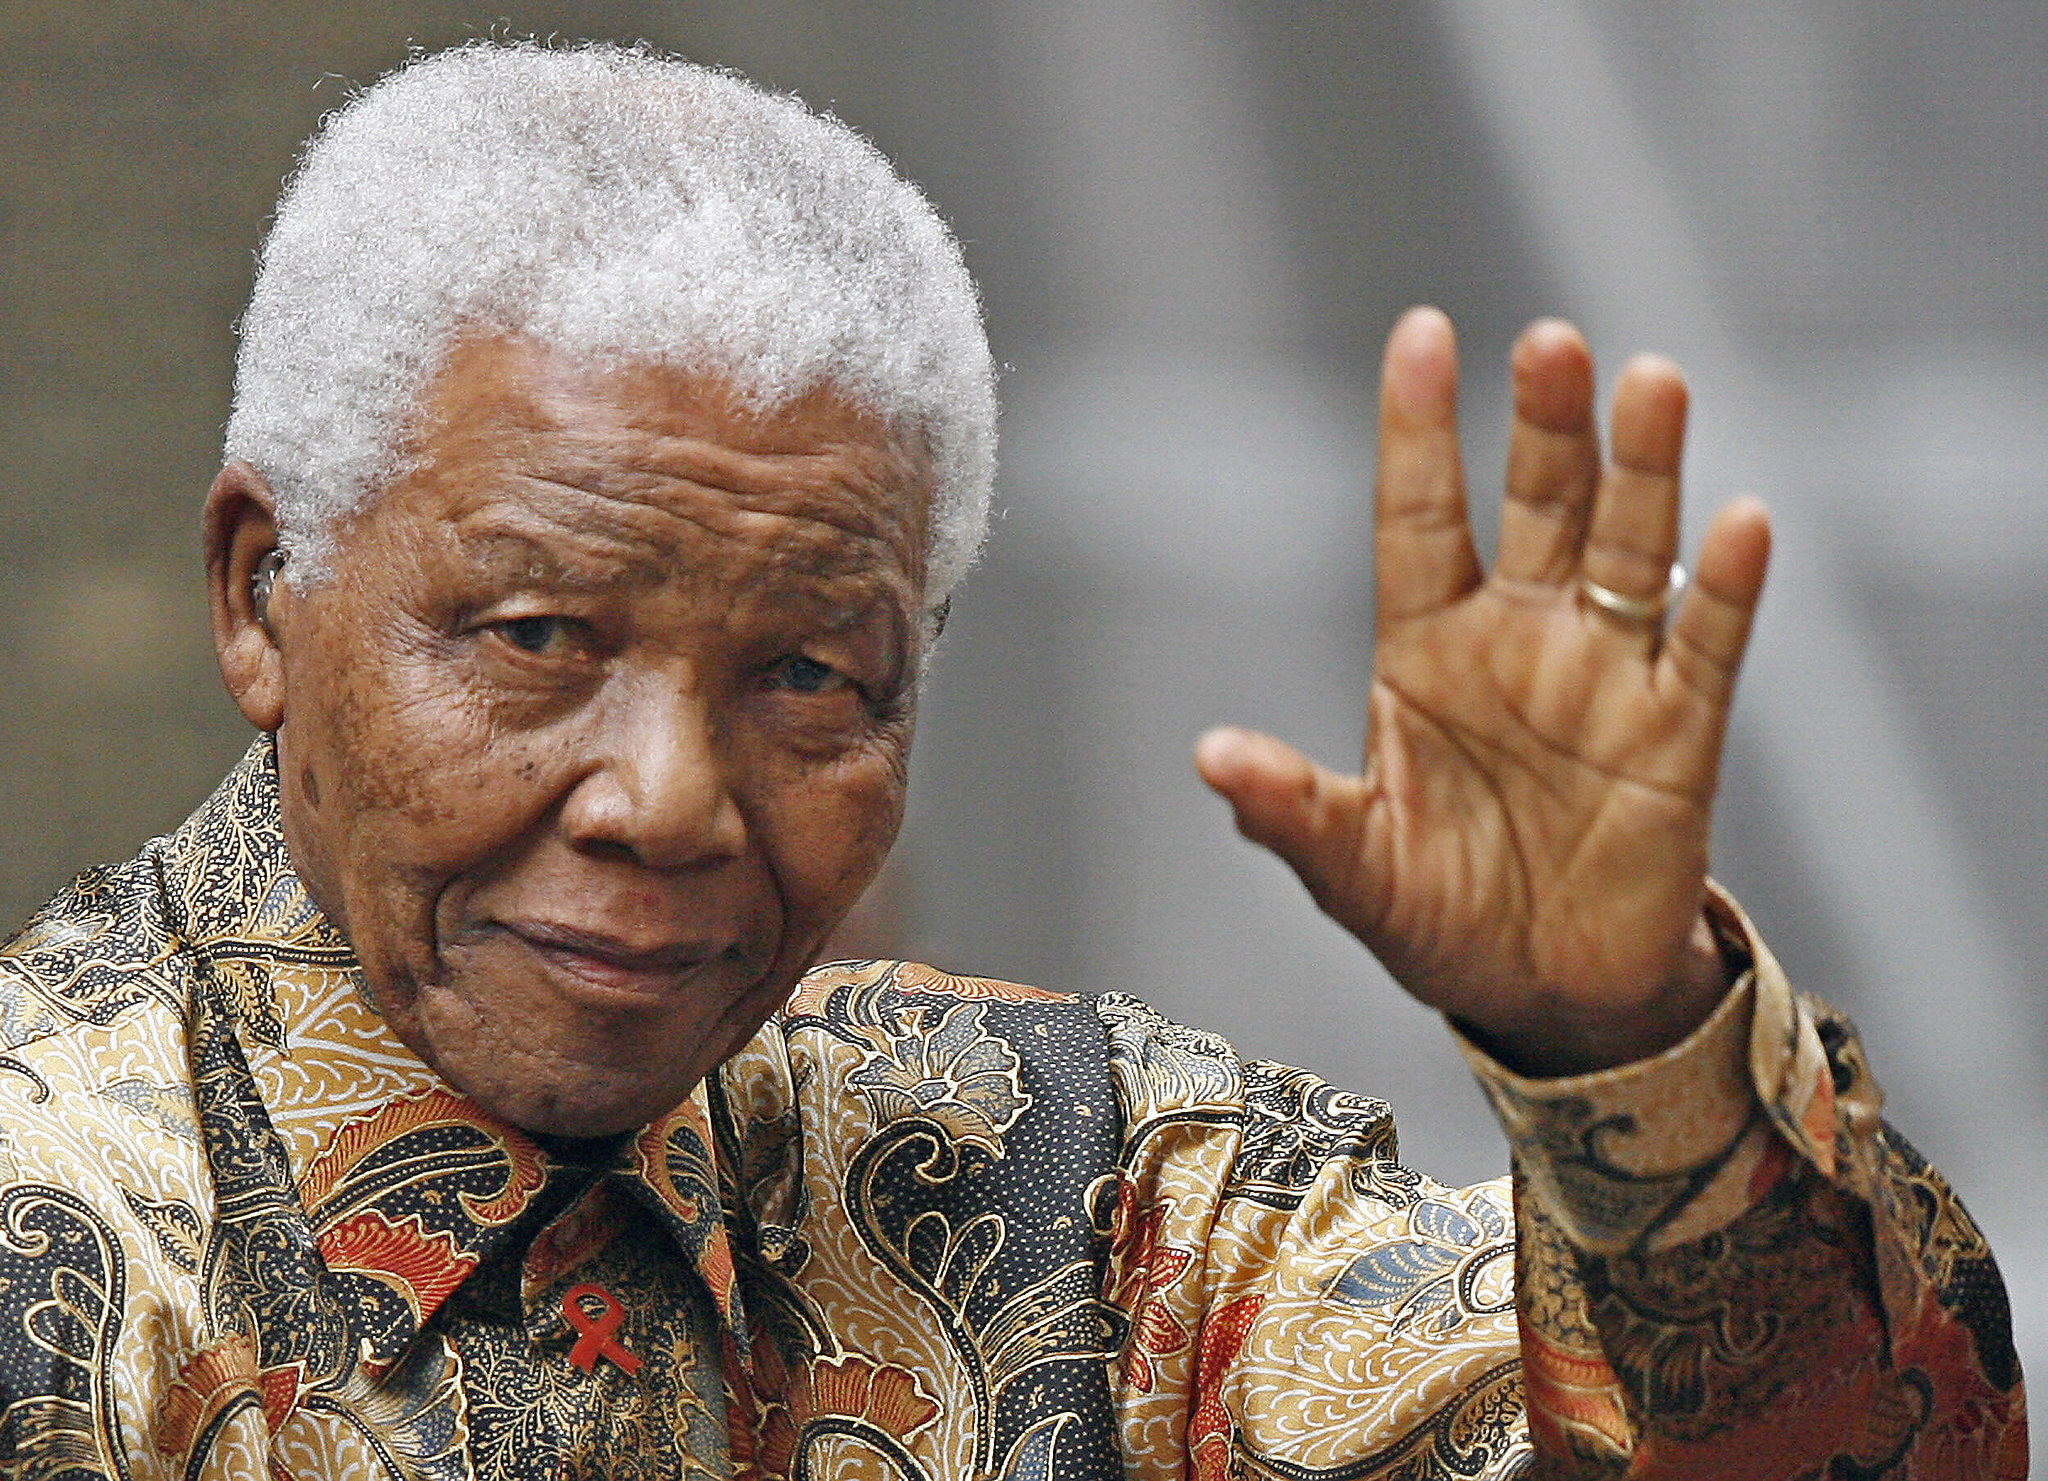 """In 2000, Nelson Mandela told Larry King how it felt to be called a terrorist: """"I was called a terrorist yesterday, but when I came out of jail, many people embraced me, including my enemies, and that is what I normally tell other people who say those who are struggling for liberation in their country are terrorists. I tell them that I was also a terrorist yesterday, but today, I am admired by the very people who said I was one."""""""